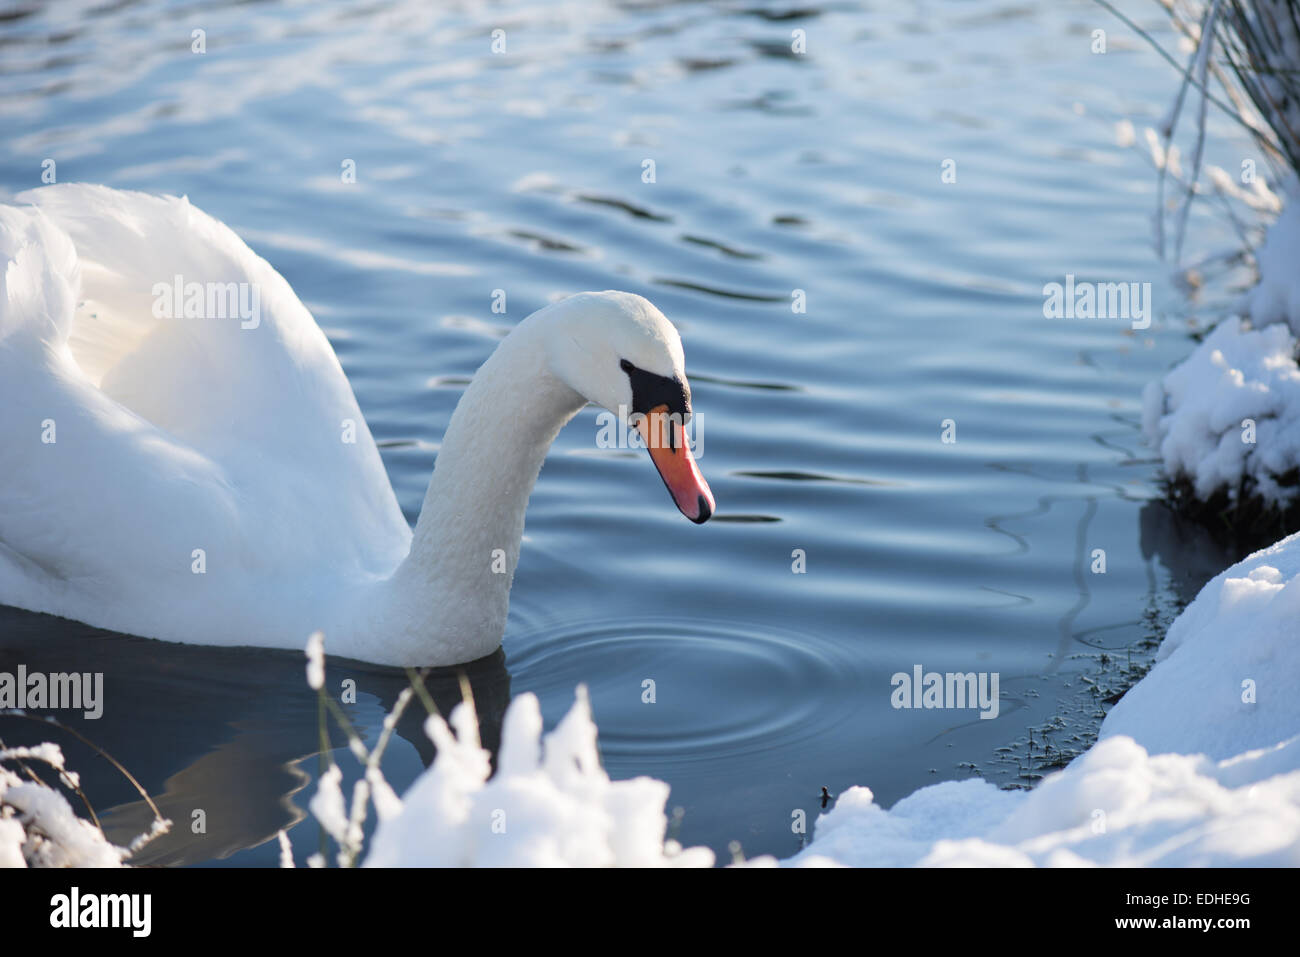 Winter white swan sitting in the water - Stock Image